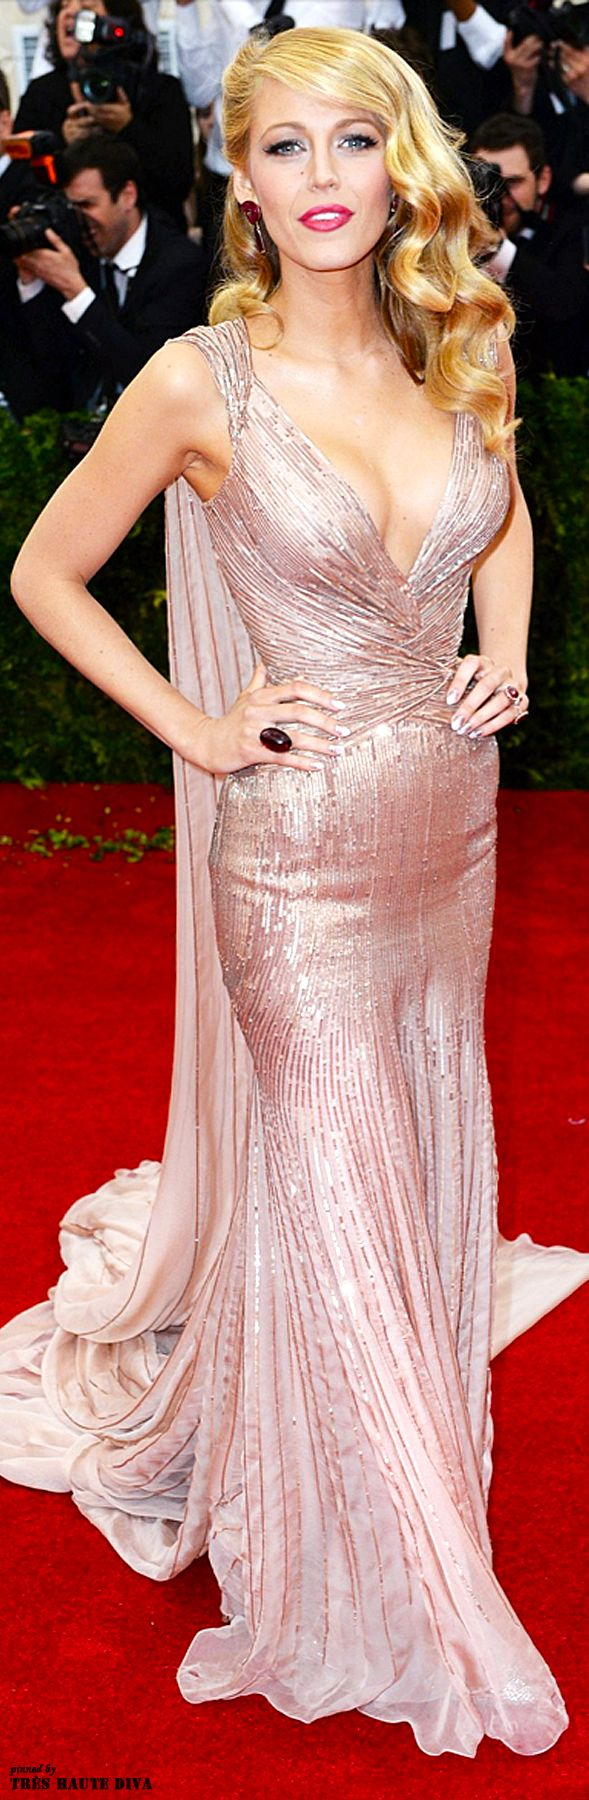 Modern Goddess / karen cox.  Blake Lively wore a custom-made Gucci Premiere gown to the MET Gala 2014